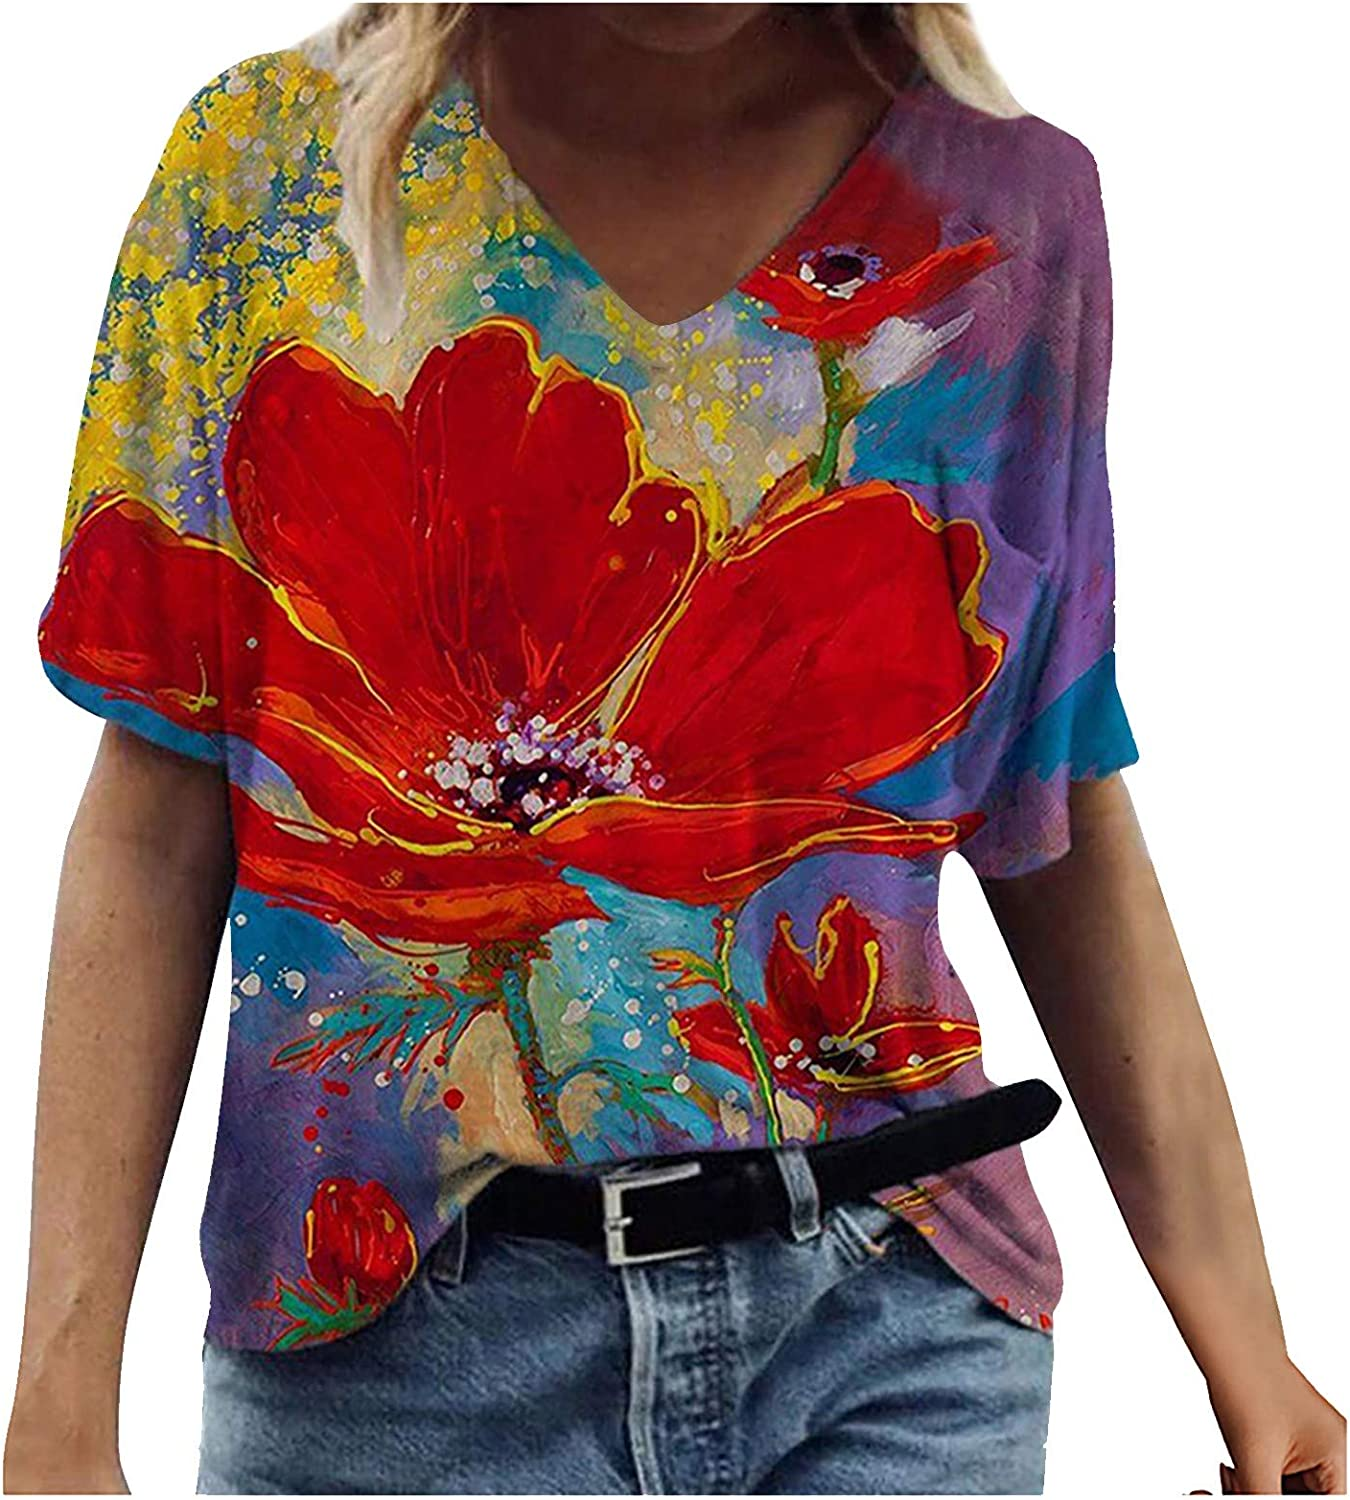 Tops for Women Casual Summer,Womens Short Sleeve Shirts Tshirts Blouse Casual Tops Loose Fit Graphic